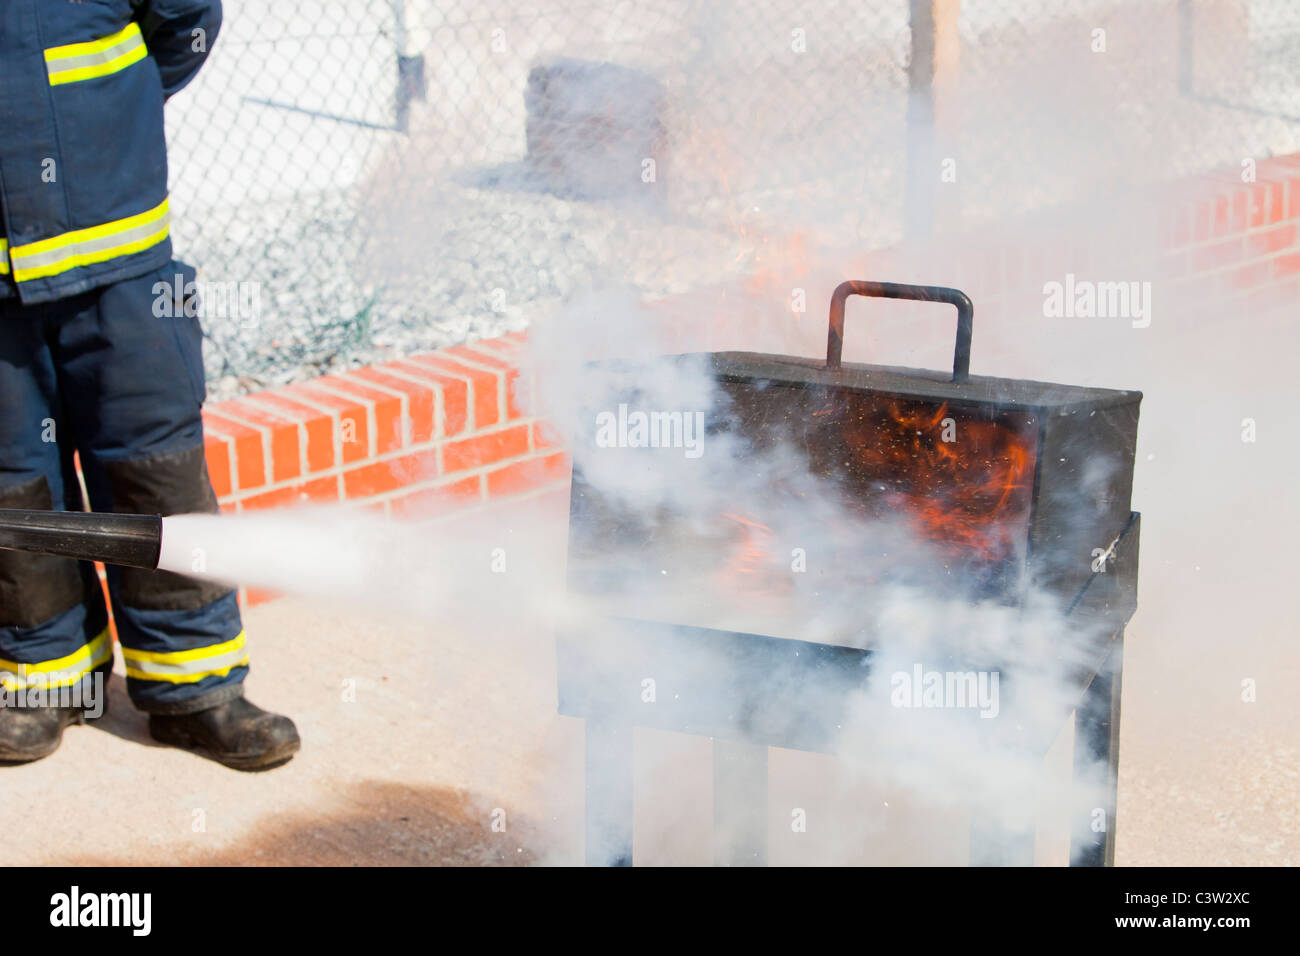 A fire fighting exercise. - Stock Image